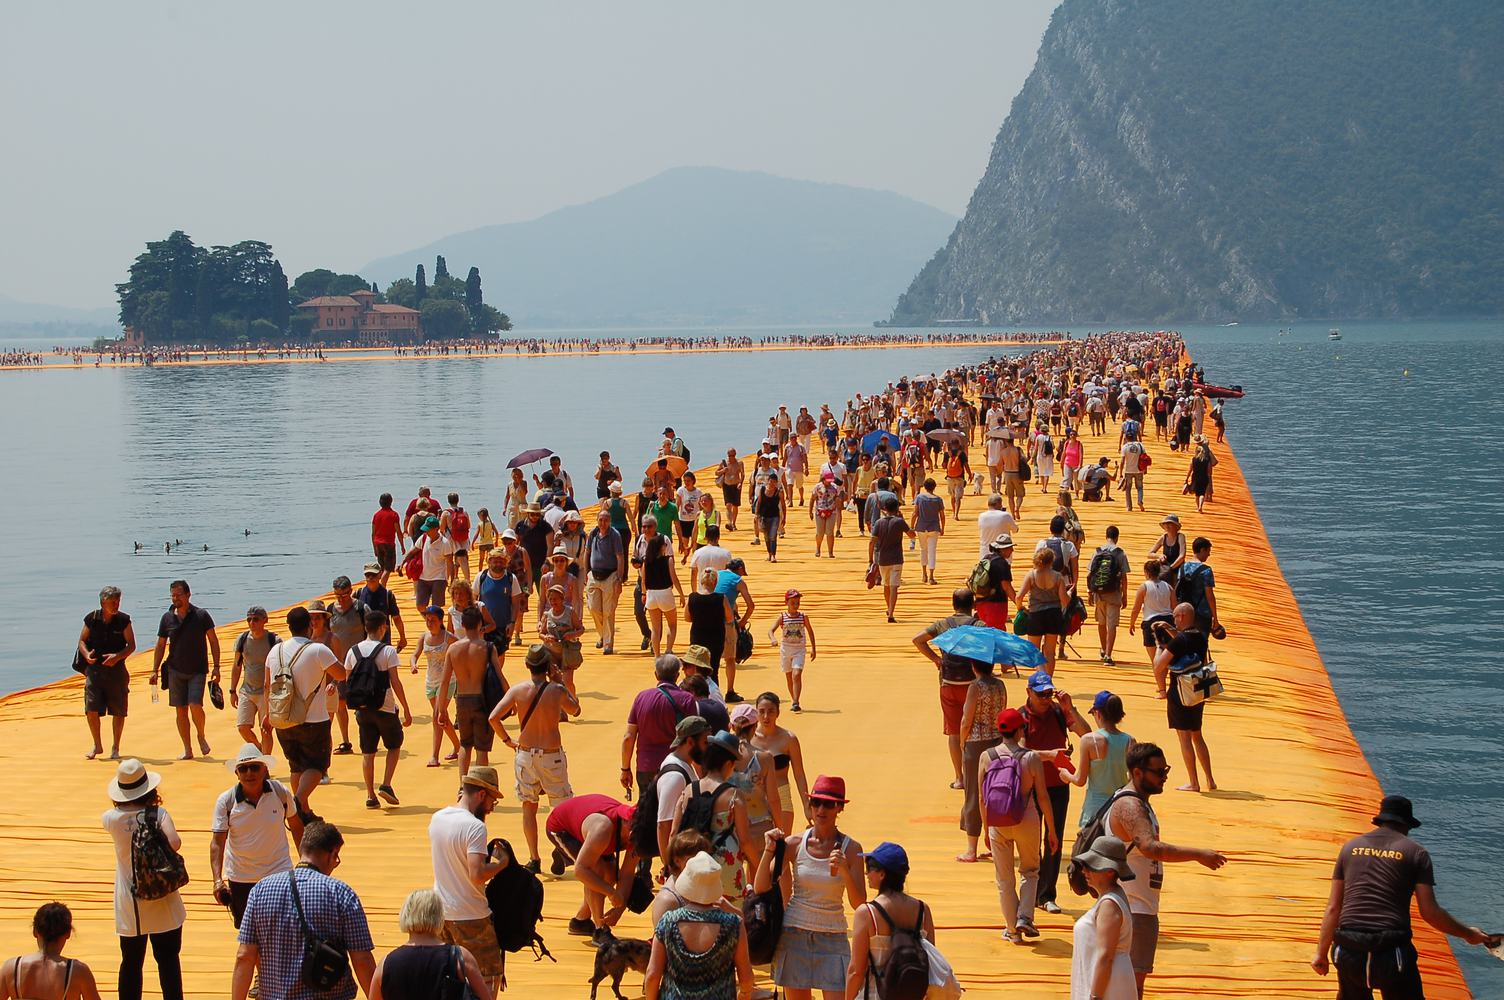 Yellow Floating Piers full of Tourist